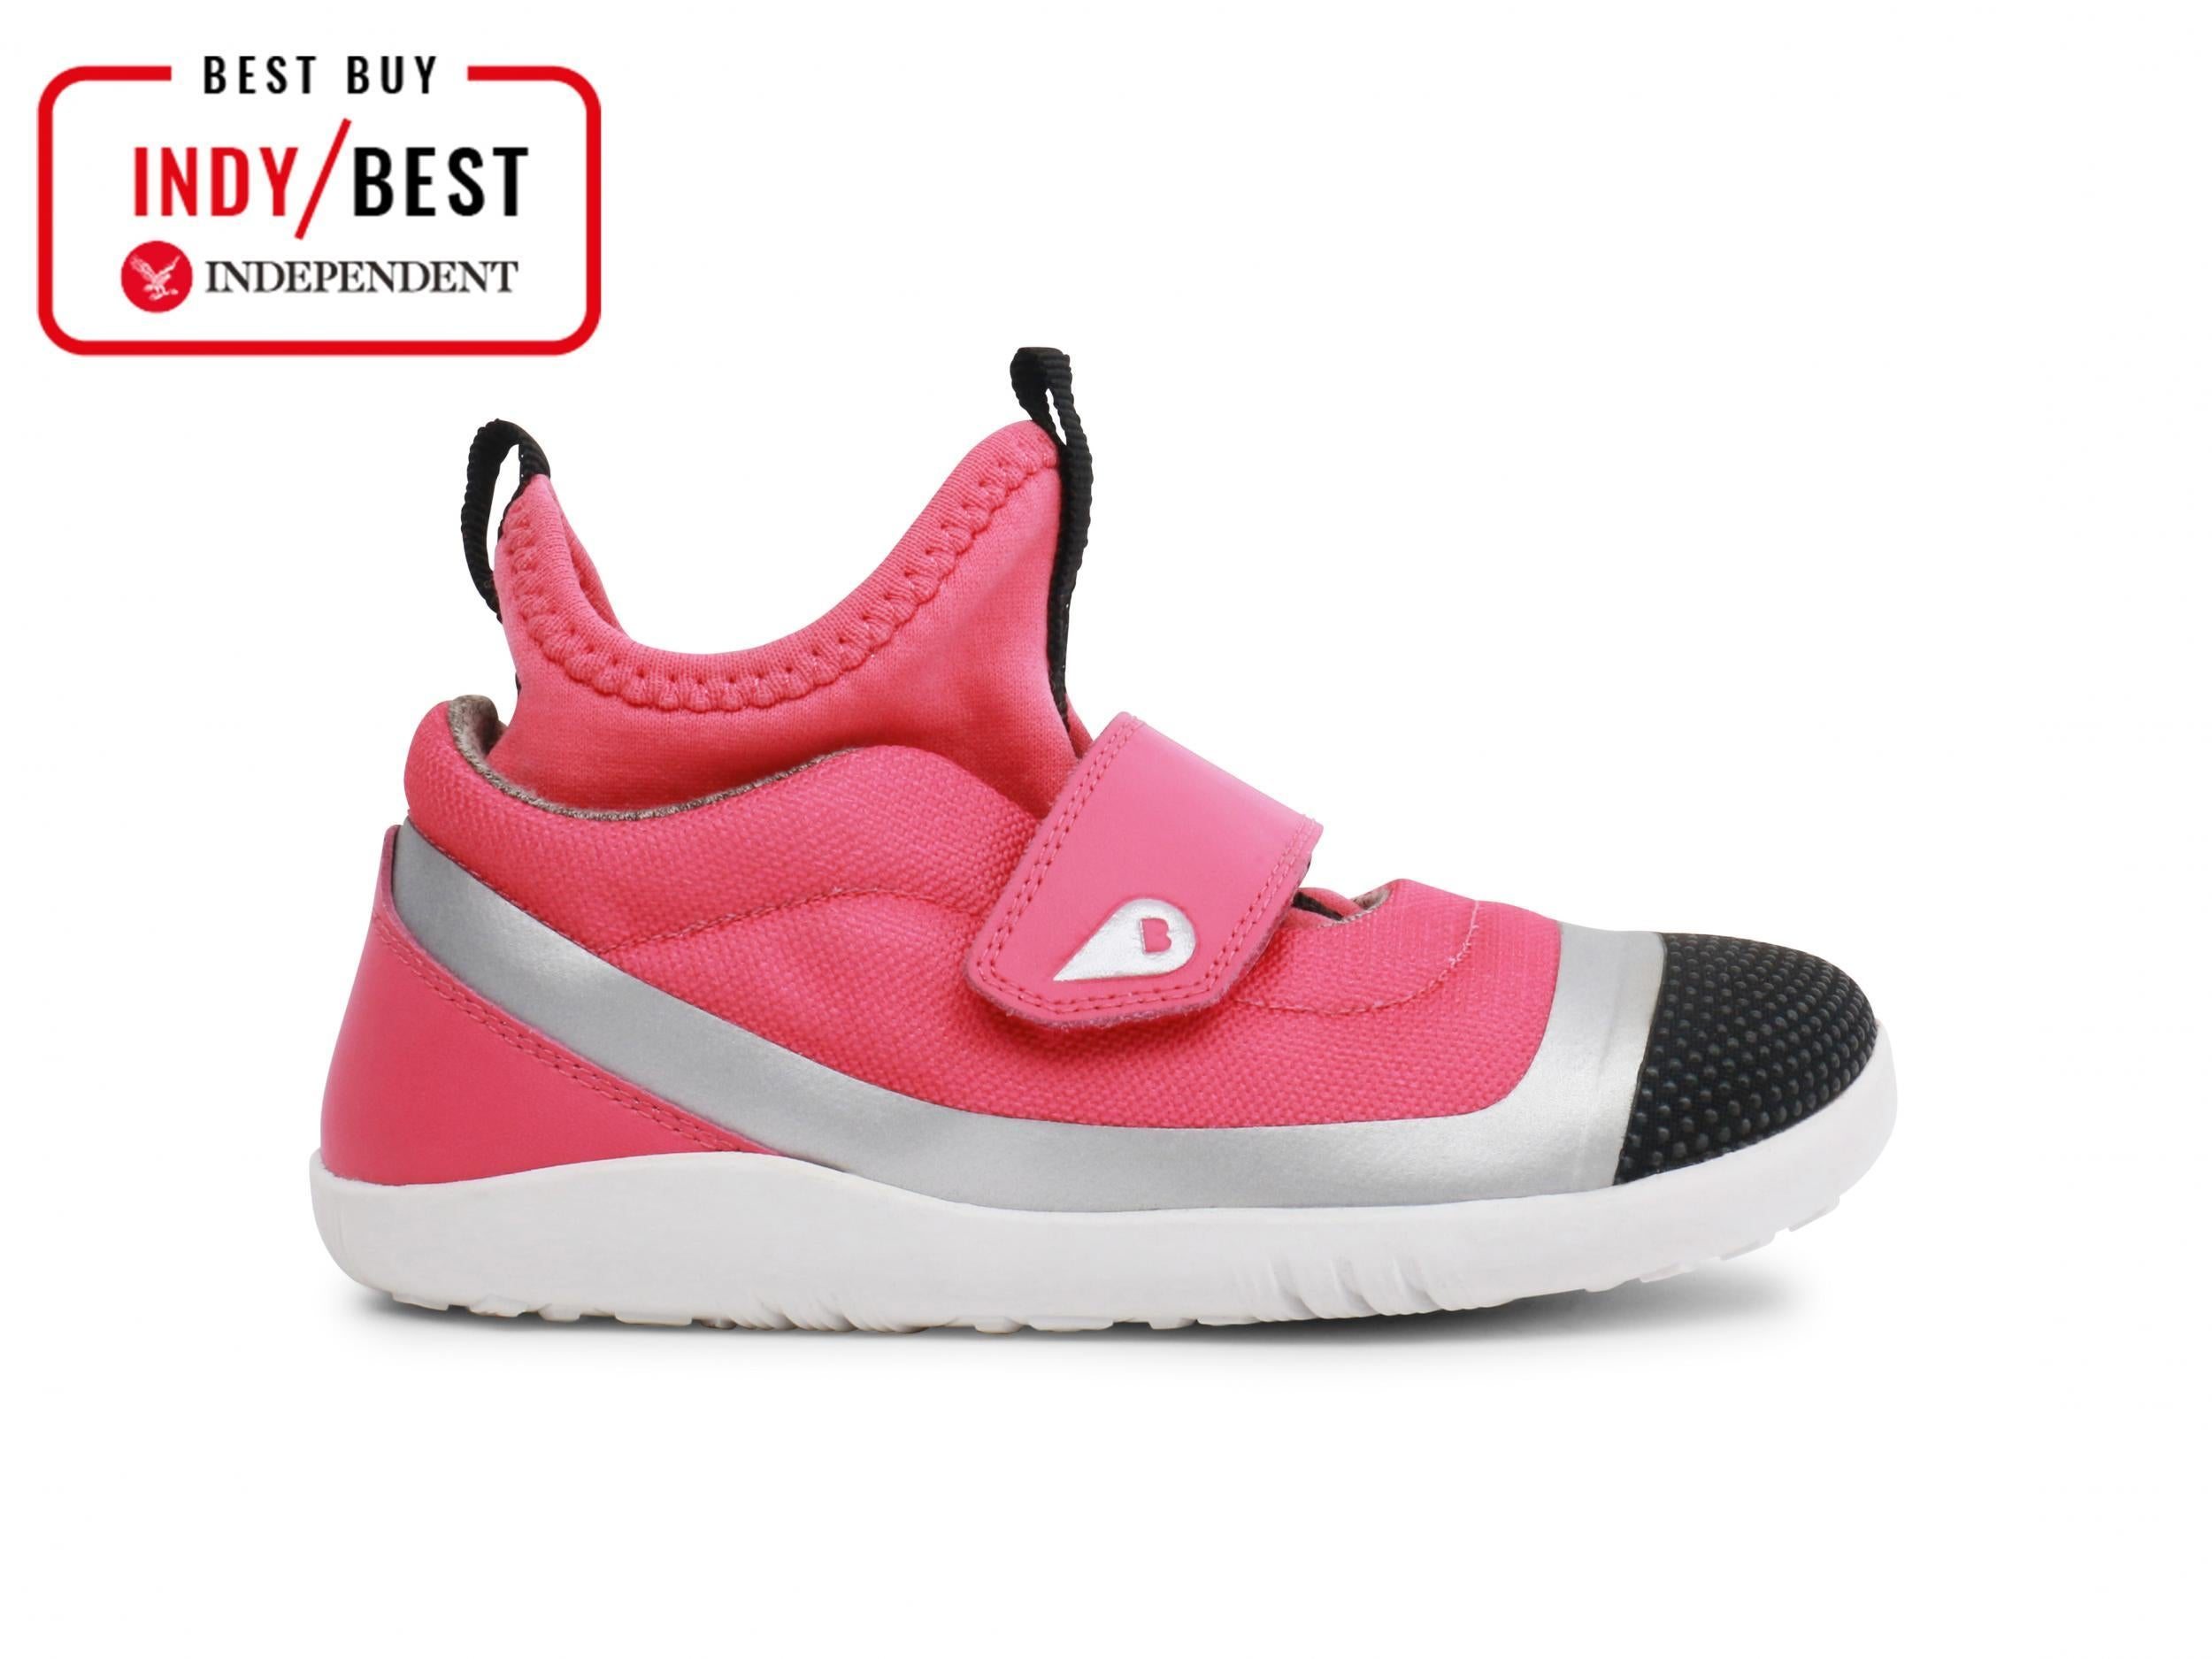 10 best kids' shoe brands | The Independent